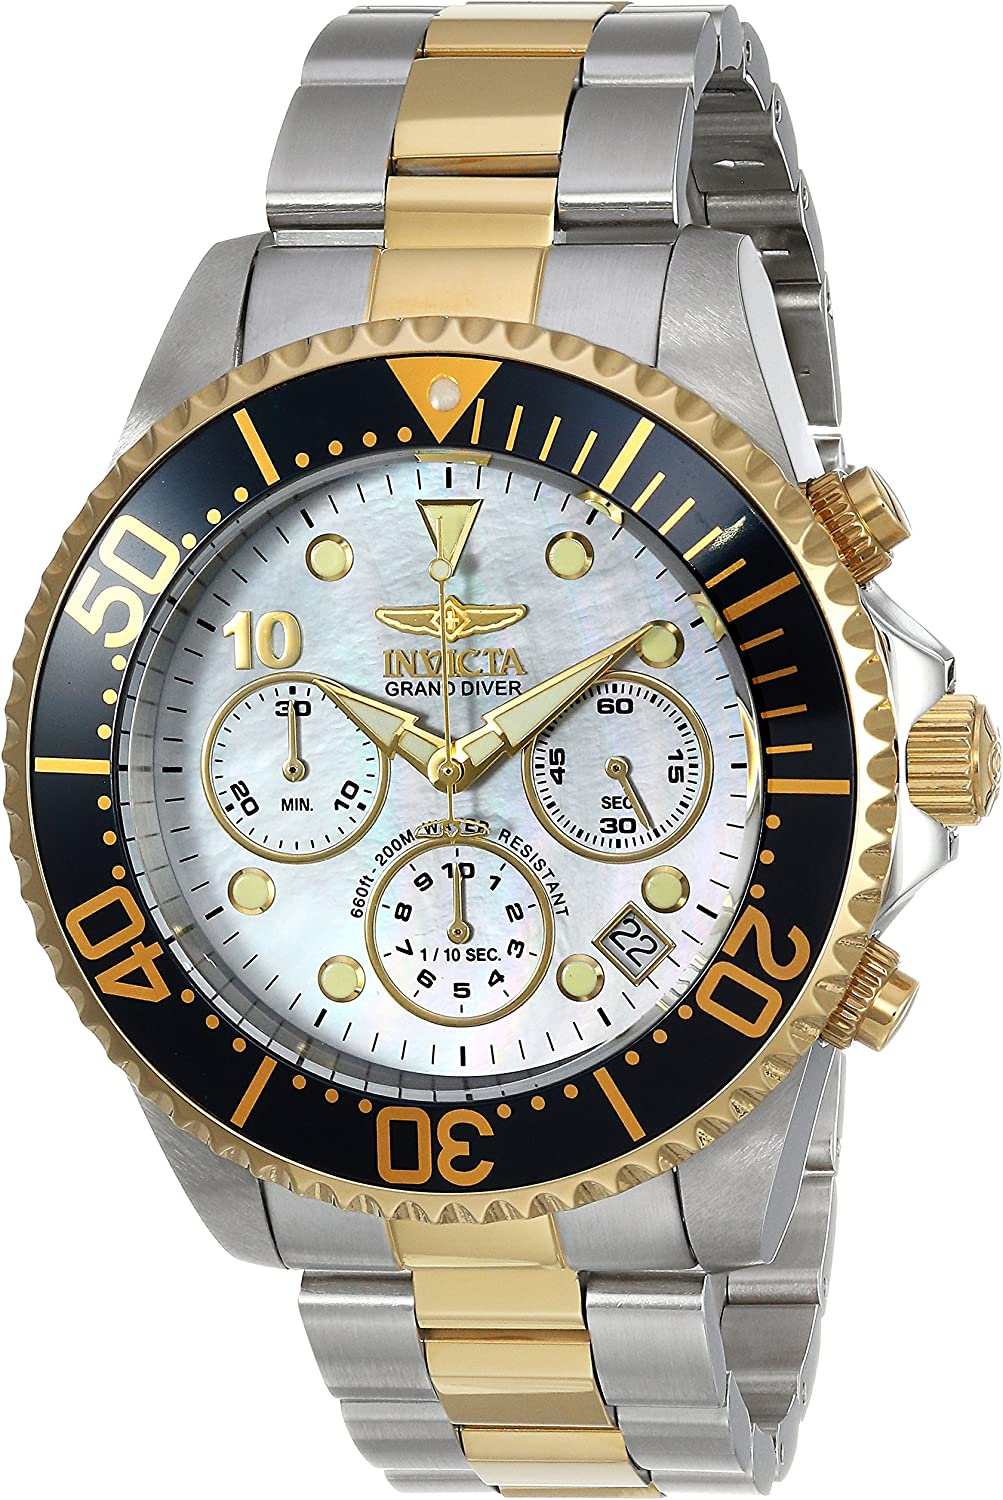 Invicta Men s Pro Diver Quartz Watch with Stainless-Steel Strap, Two Tone, 22 Model 22038